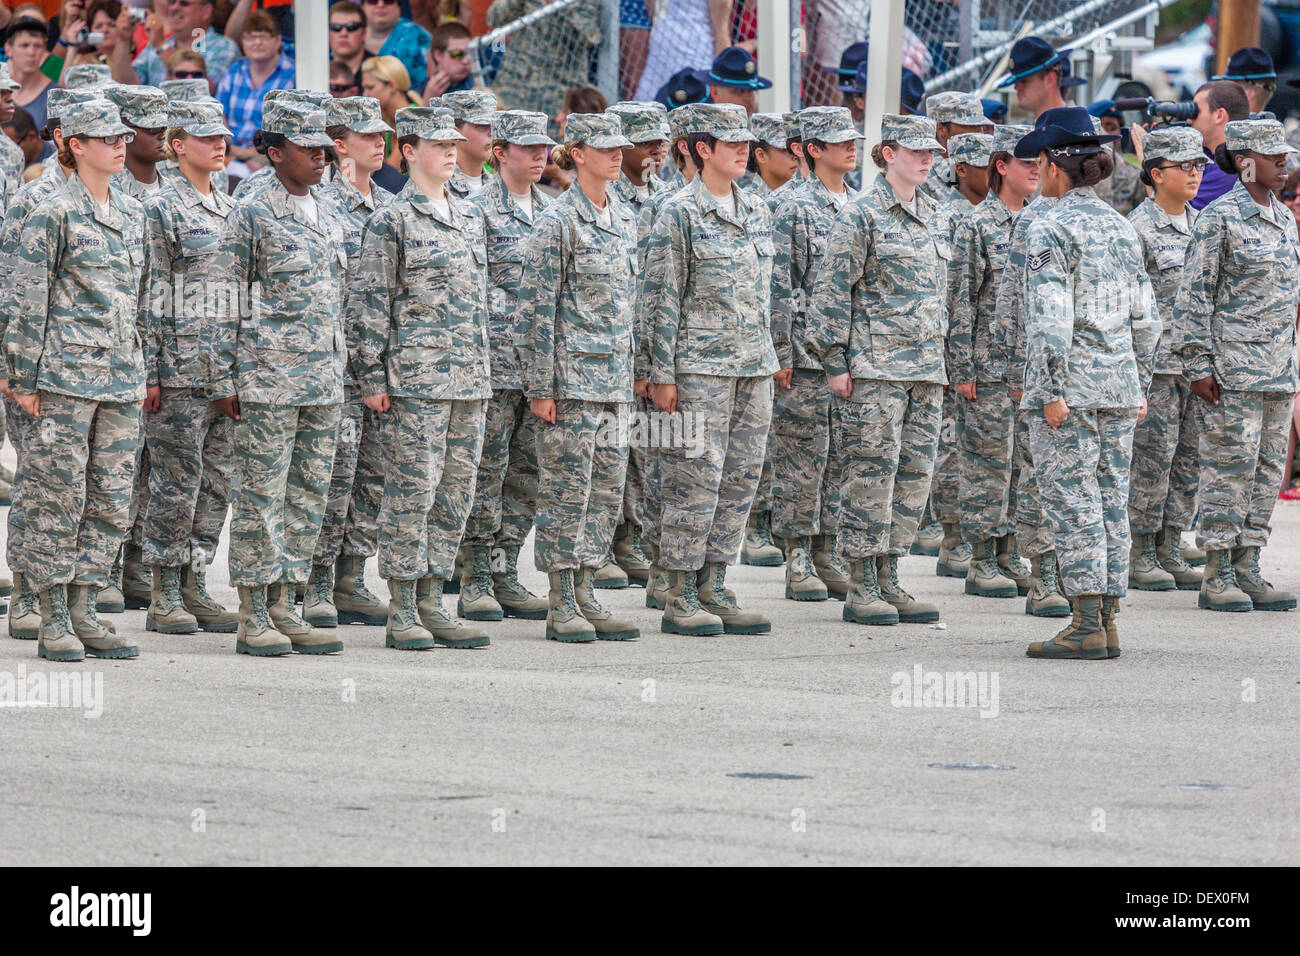 Flight Of Female Airmen At Attention In Formation During